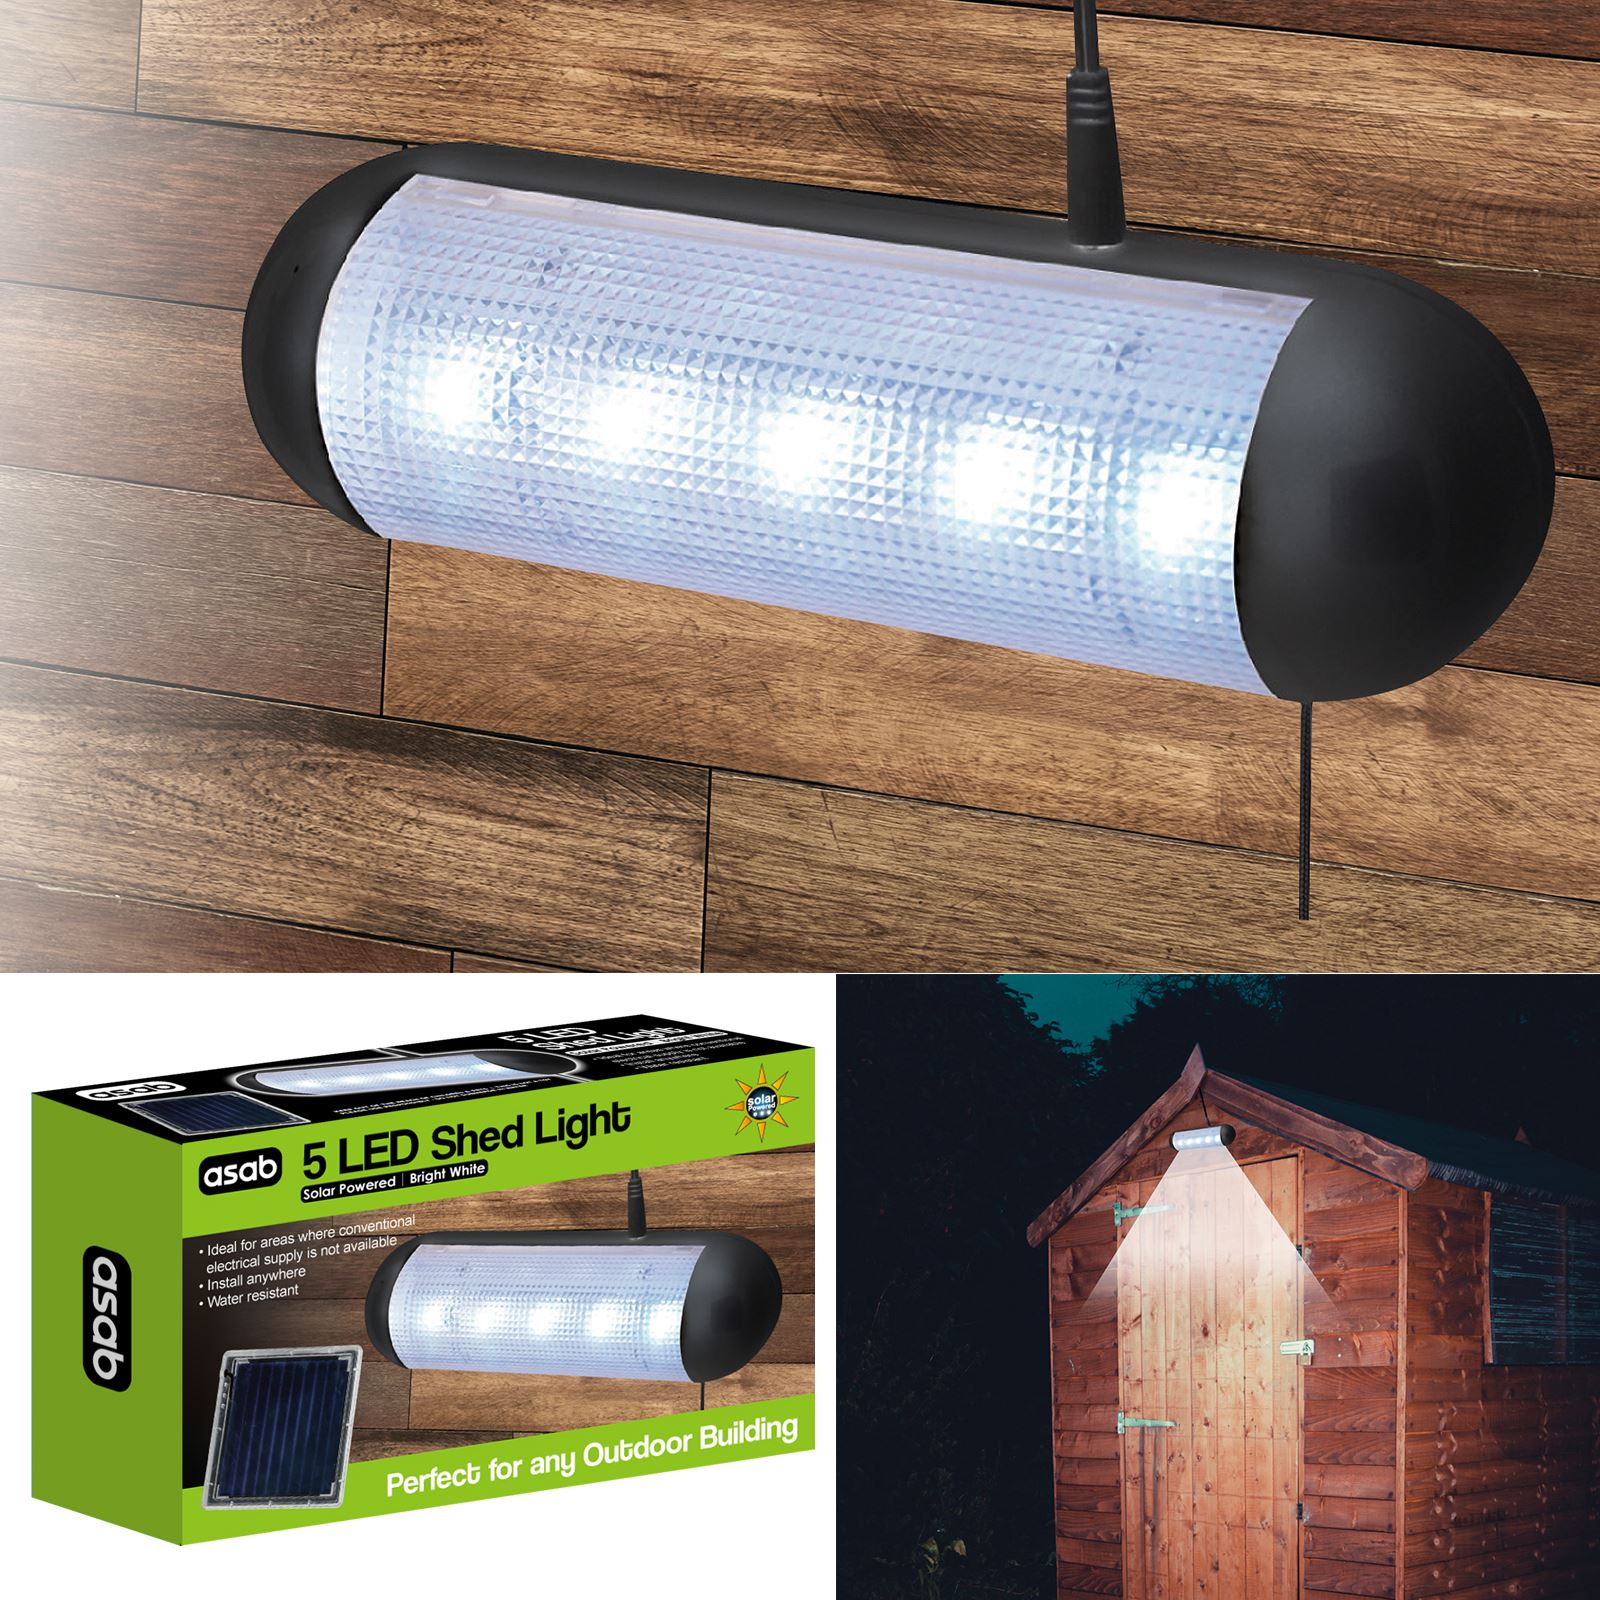 Solar powered 5 bright white led shed light rechargeable outdoor solar powered 5 bright white led shed light aloadofball Image collections